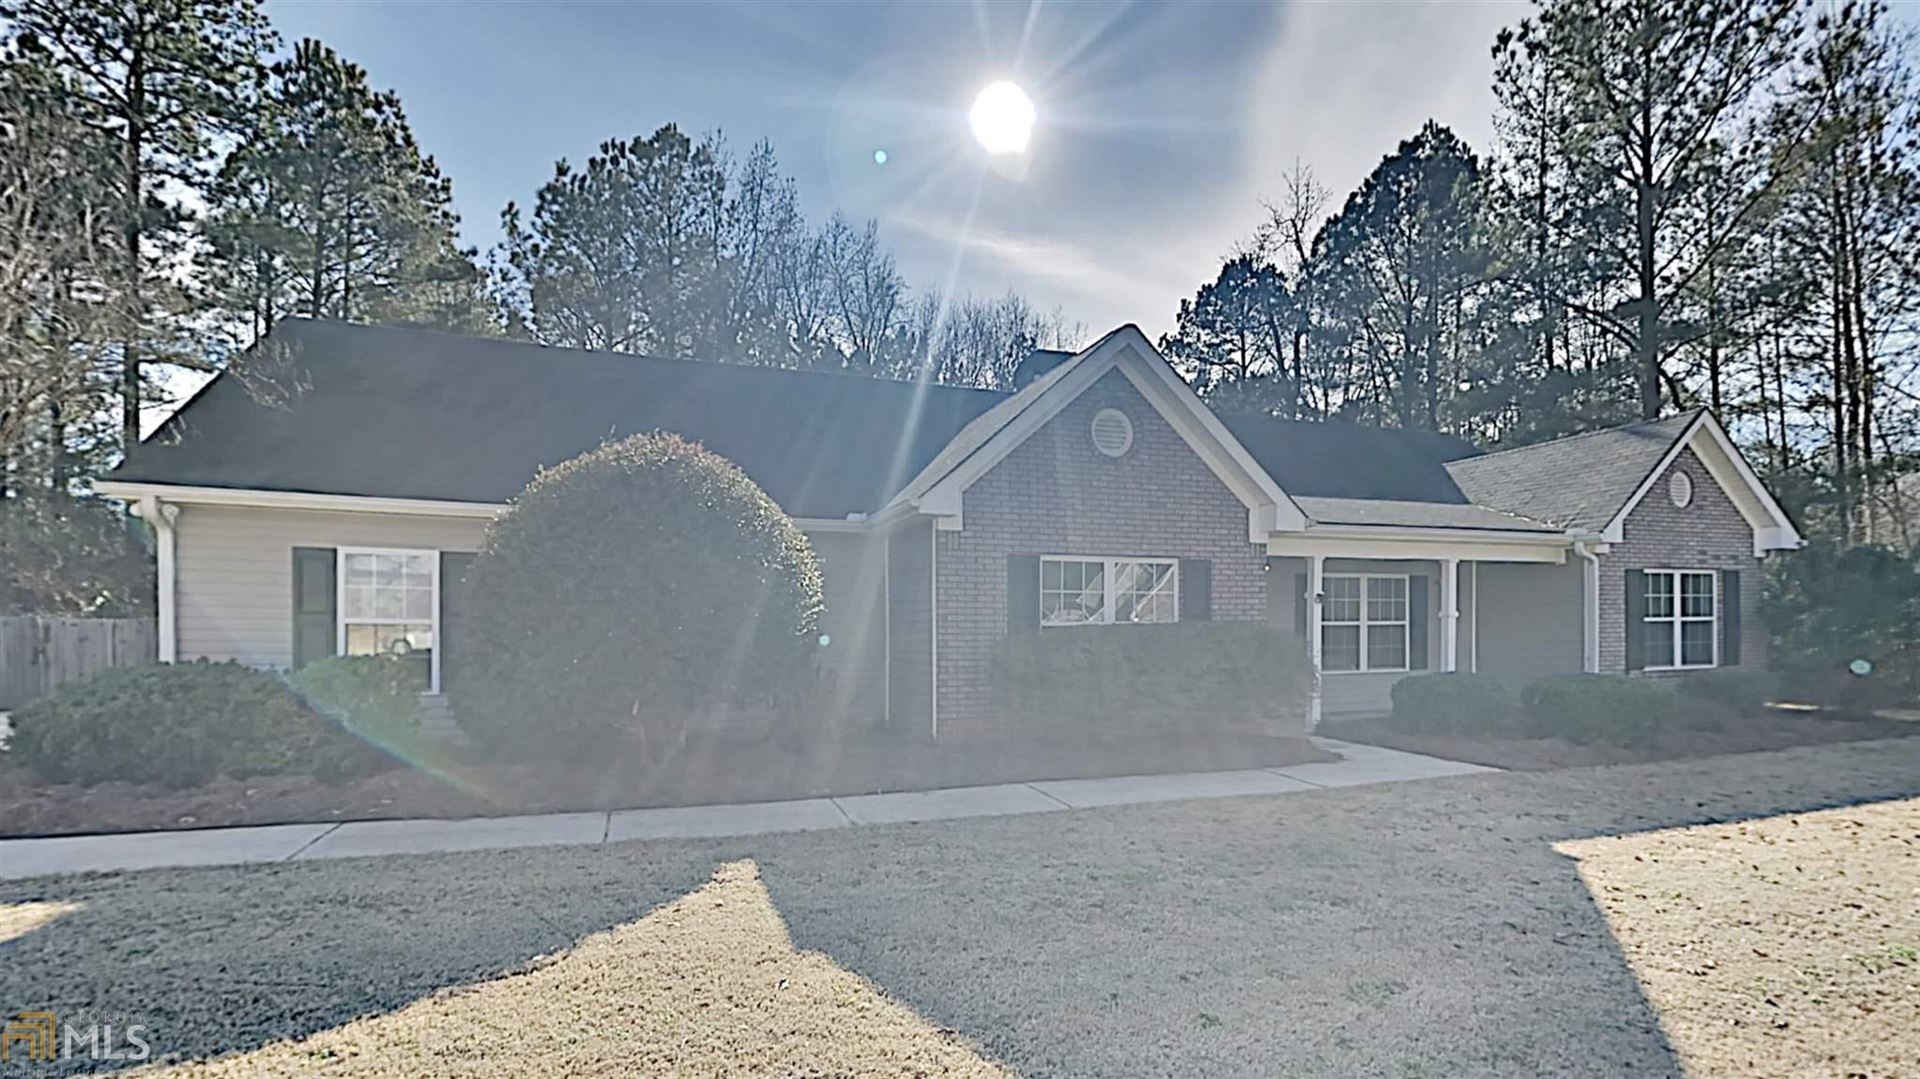 45 Argyll Way, Covington, GA 30014 - #: 8908143